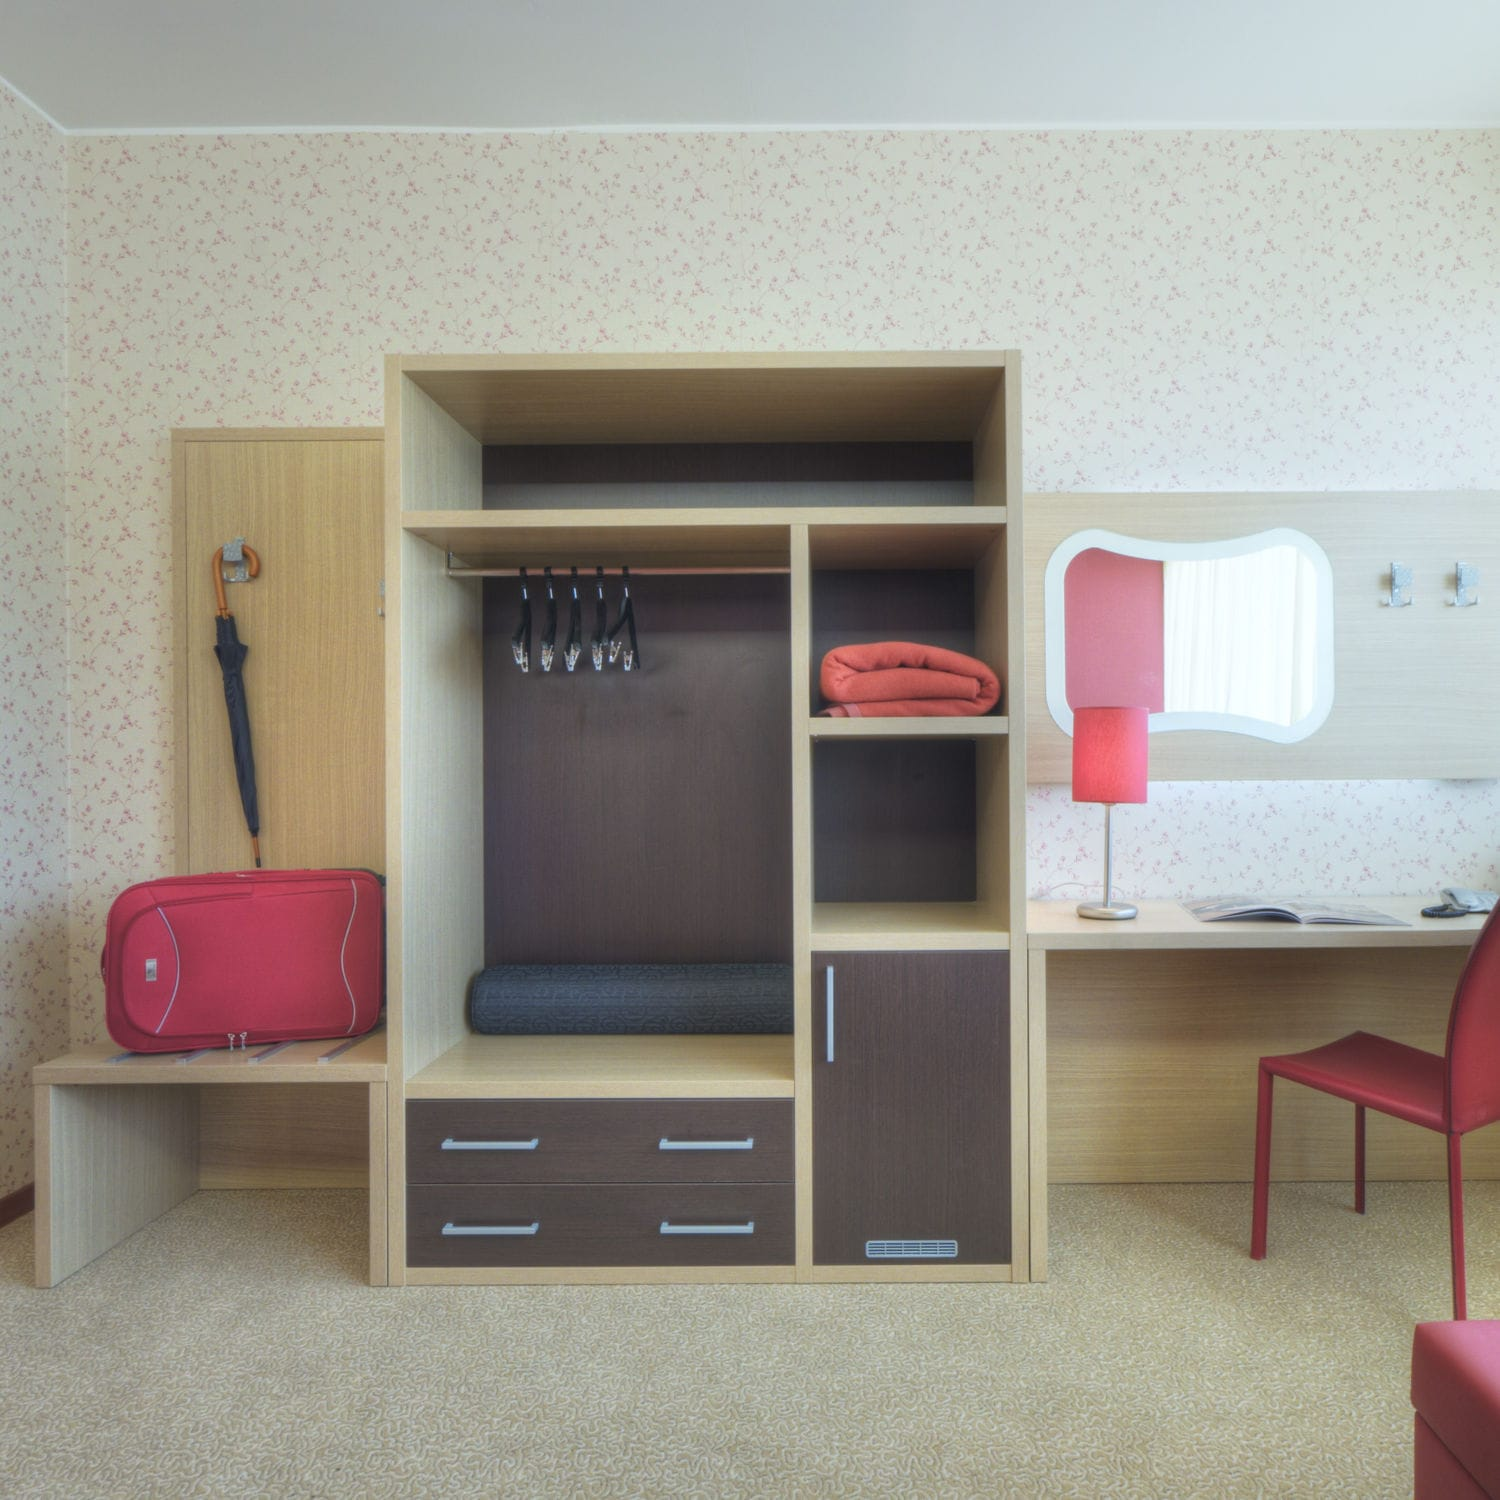 Contemporary walk in wardrobe wooden HOTEL ROOMOPEN WARDROBE